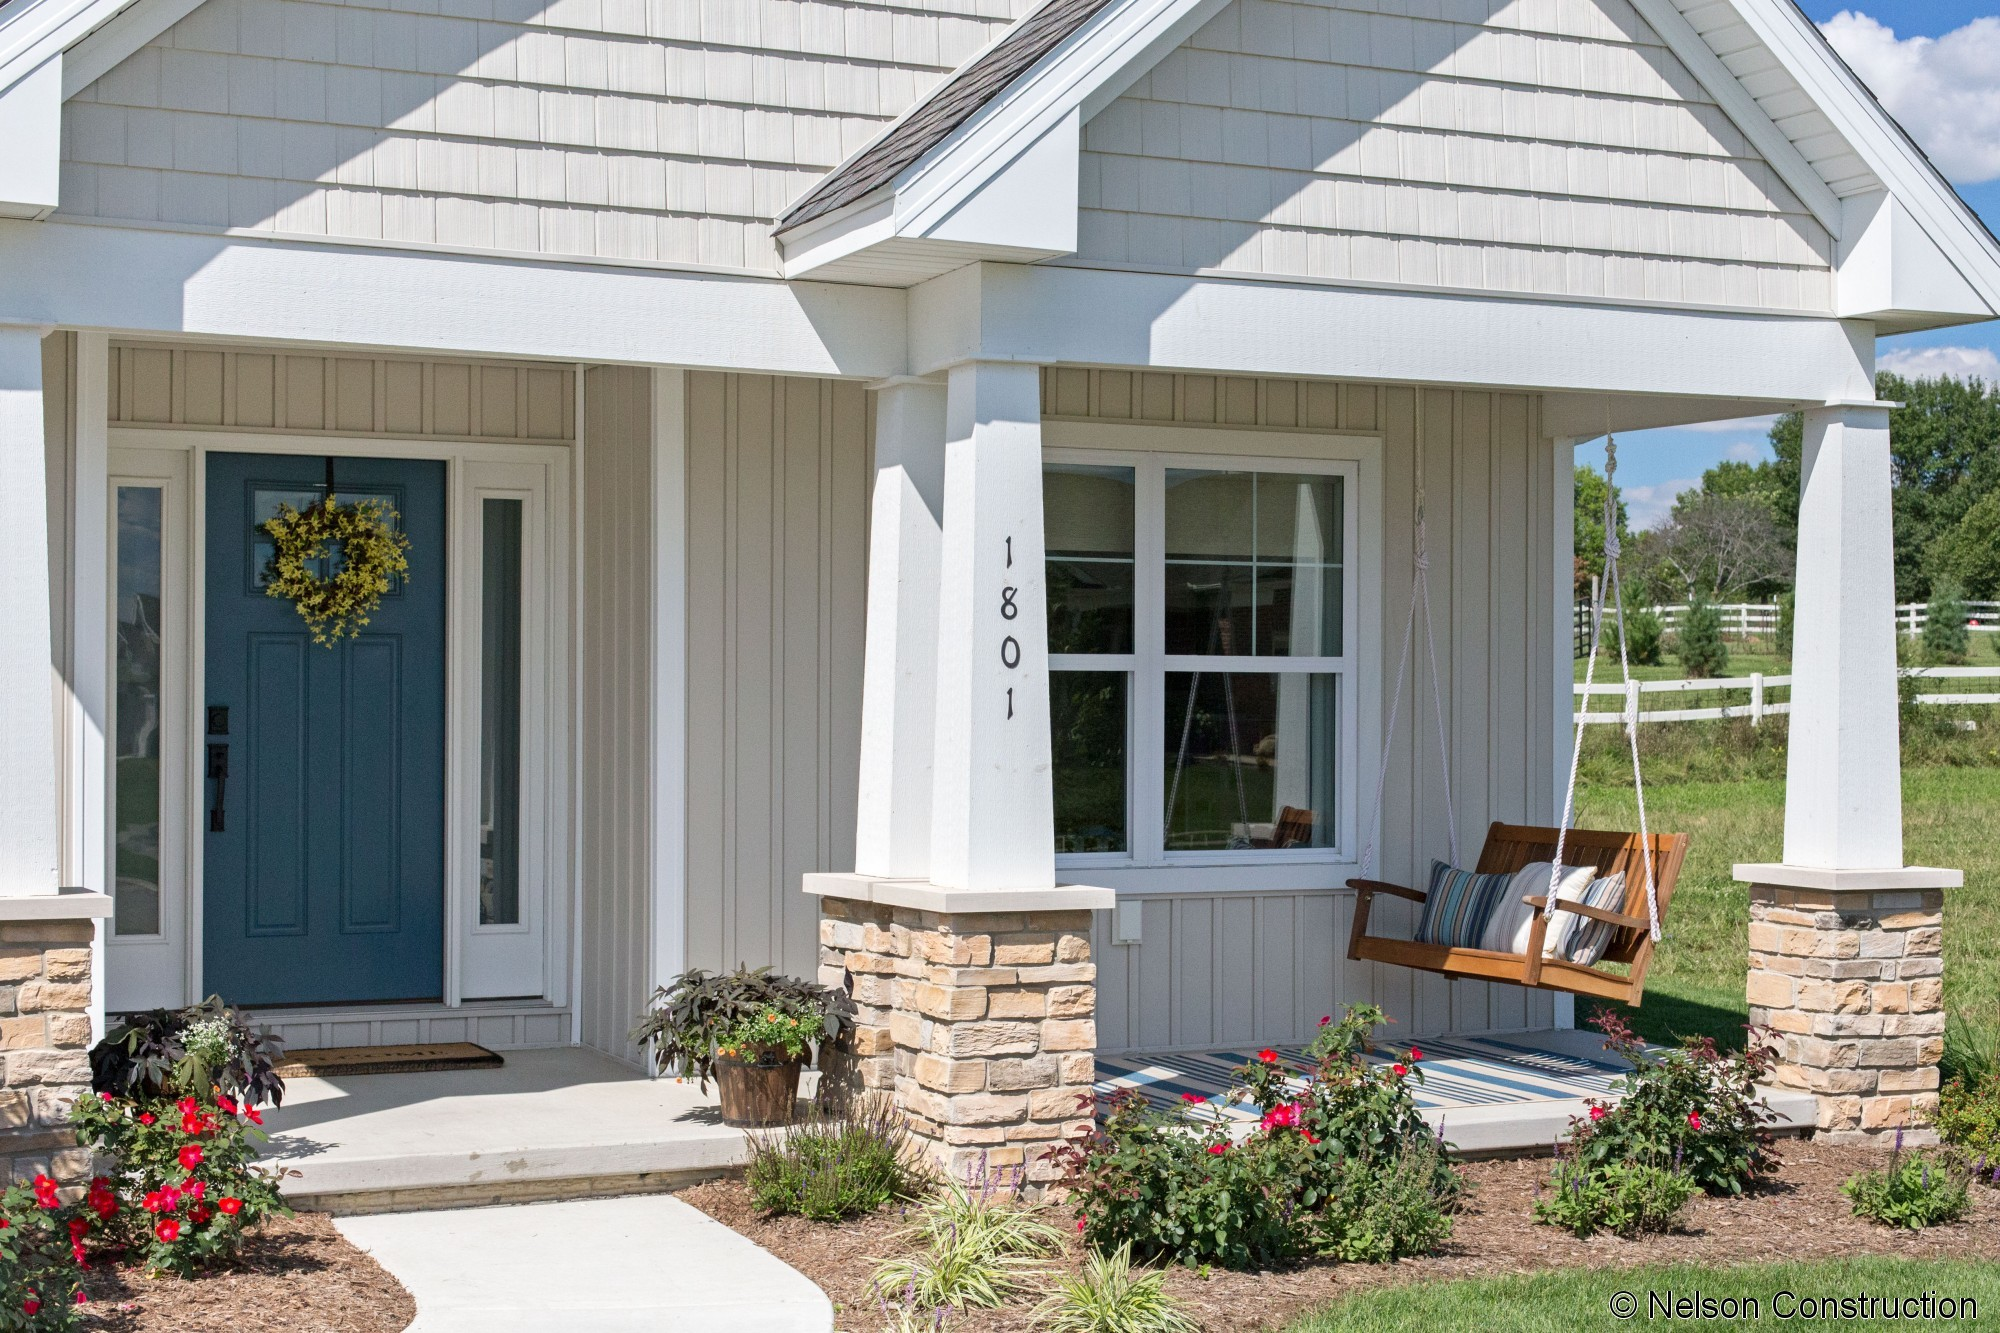 The front porch of this Sycamore home is warm and inviting with a porch swing to complete the space.